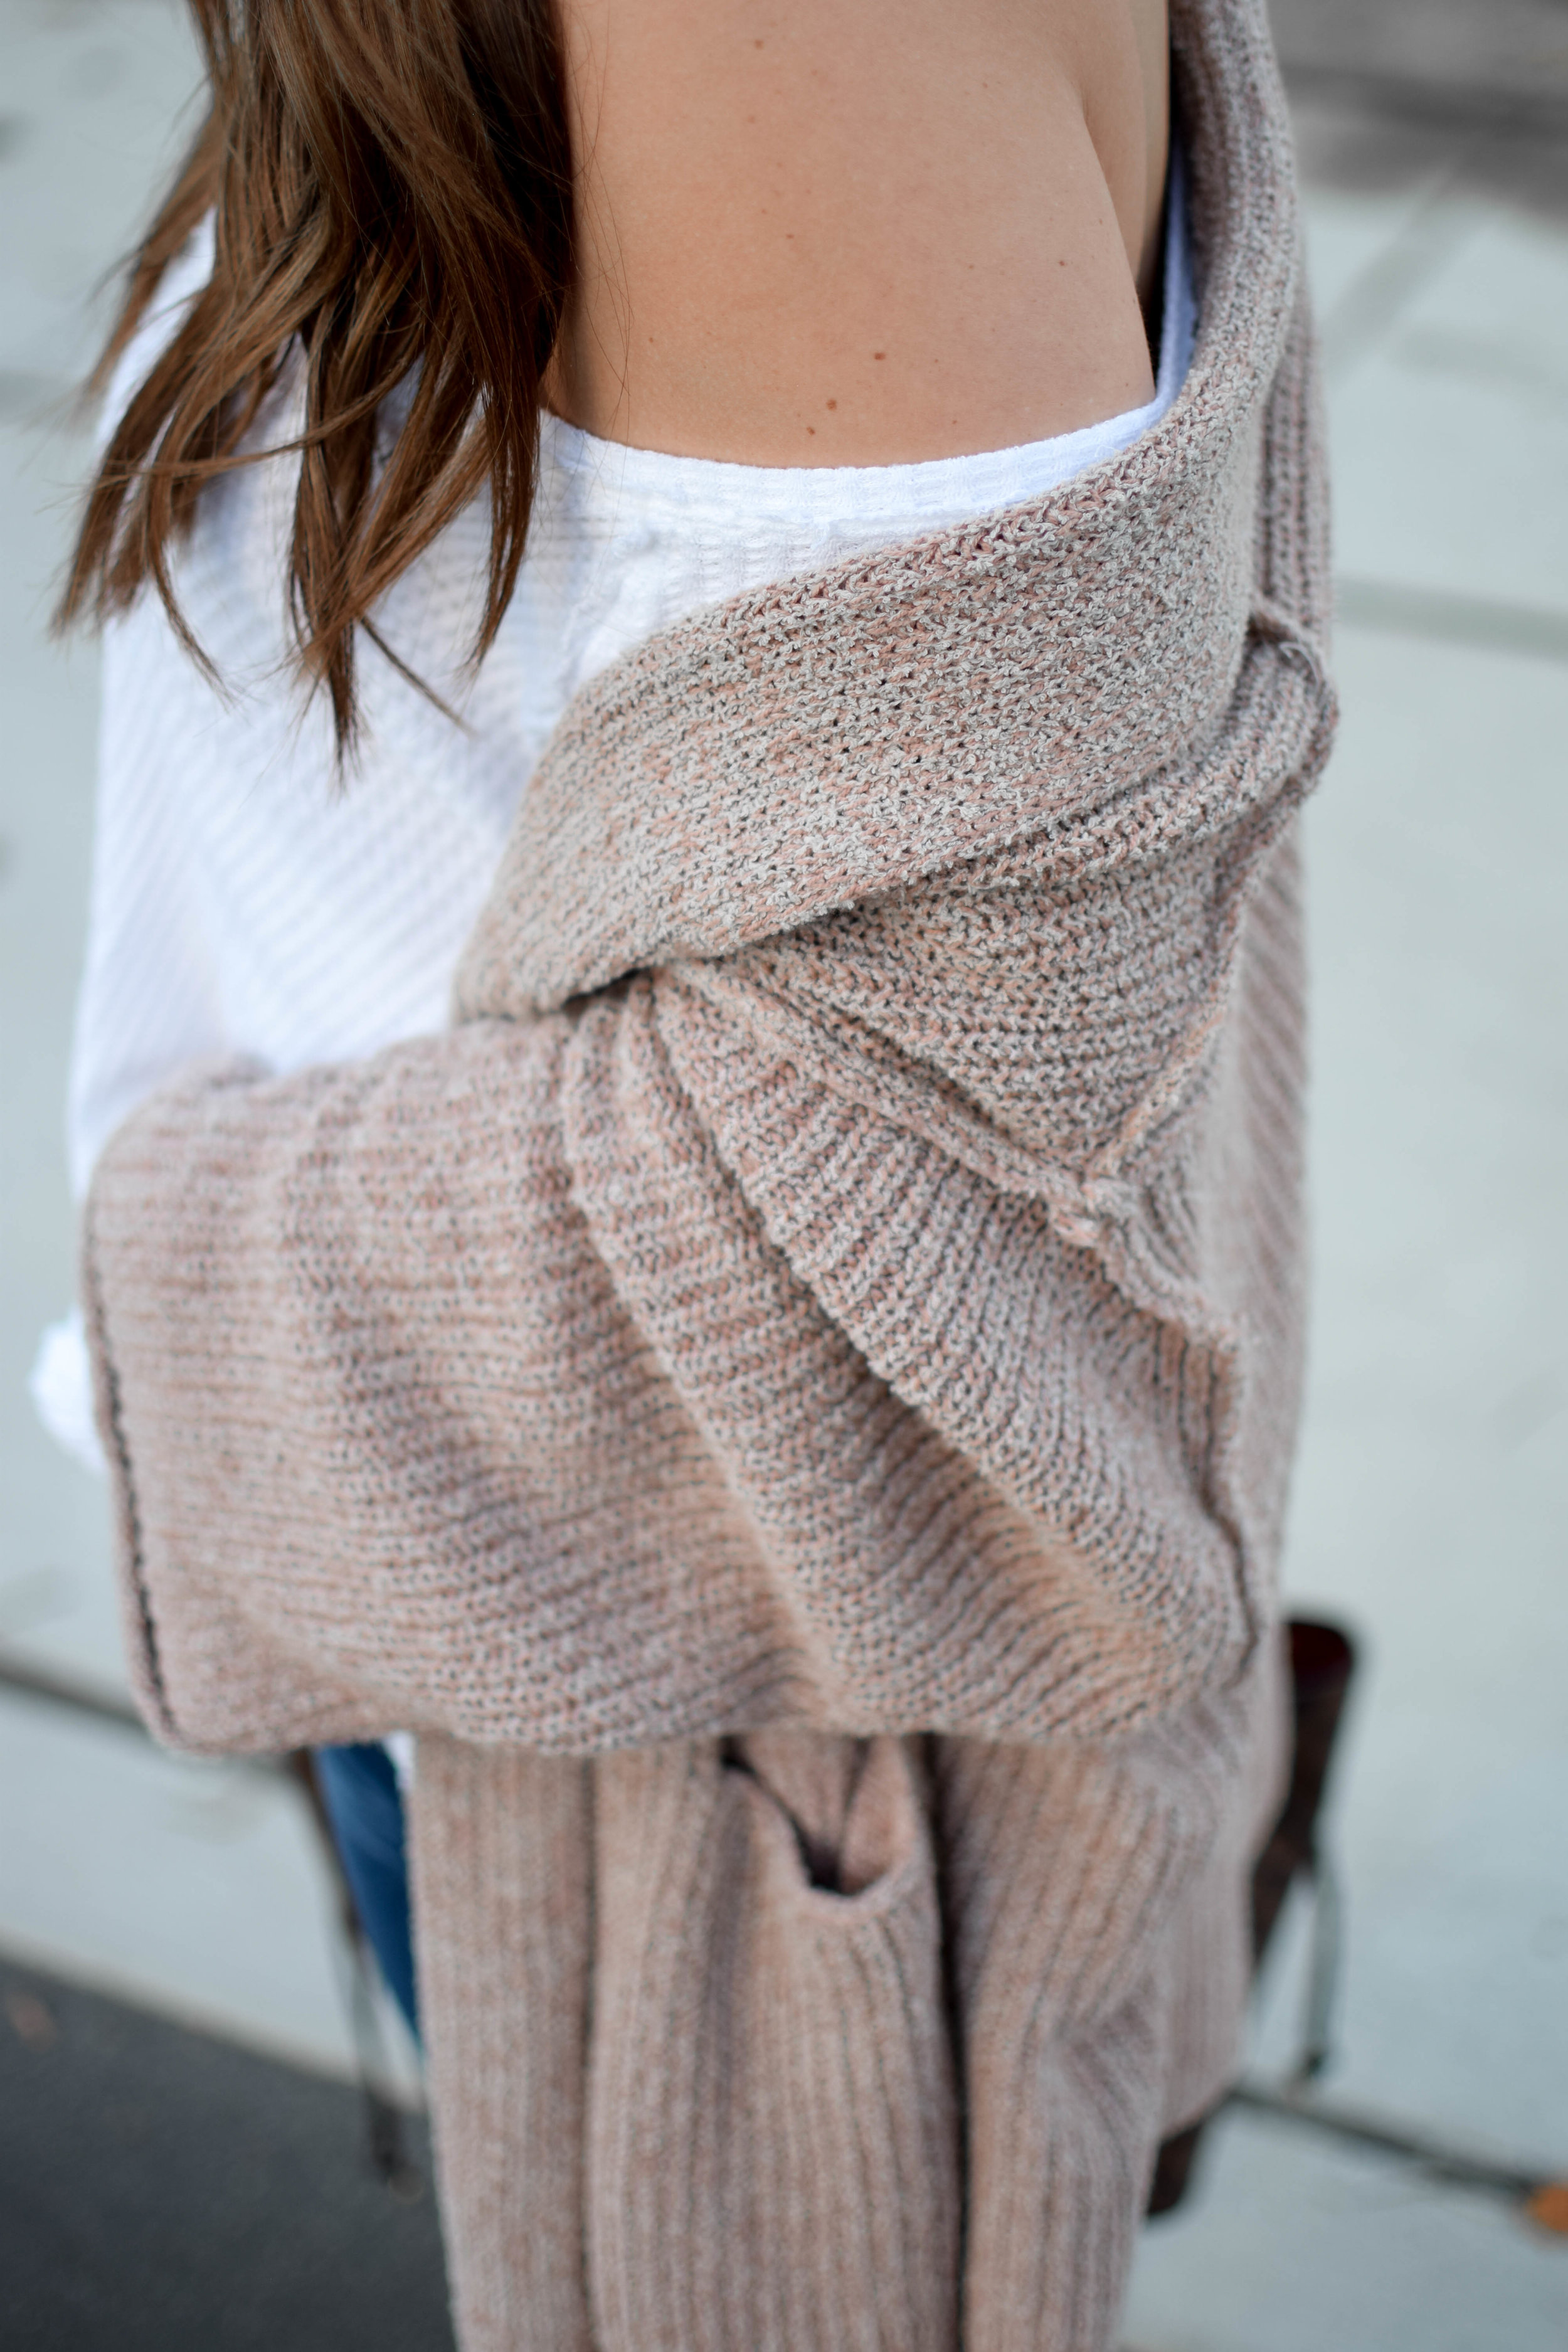 fall fashion / fall outfit idea / fall outfit inspiration / free people thermal / free people cardigan / sweater weather / fall feels / fall vibes